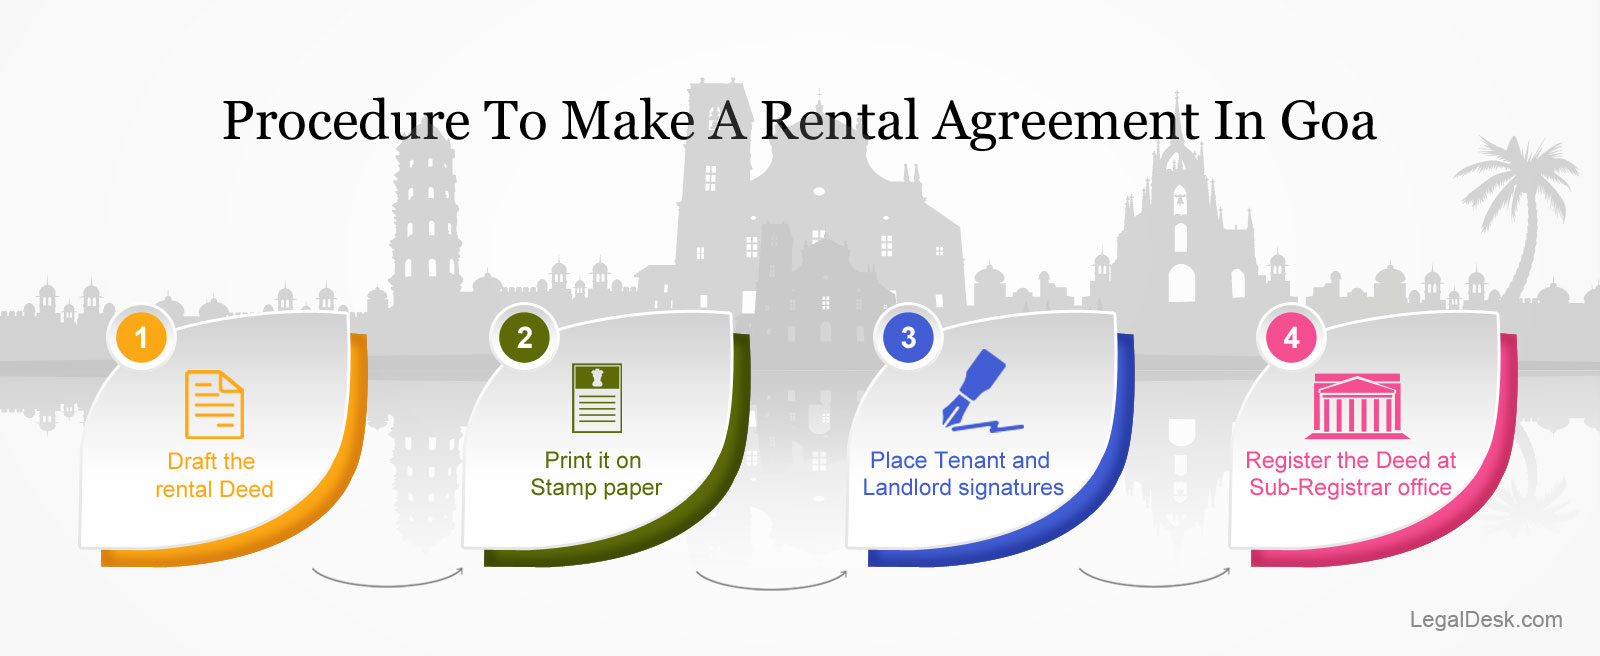 Procedure-for-rental-agreement-in-Goa